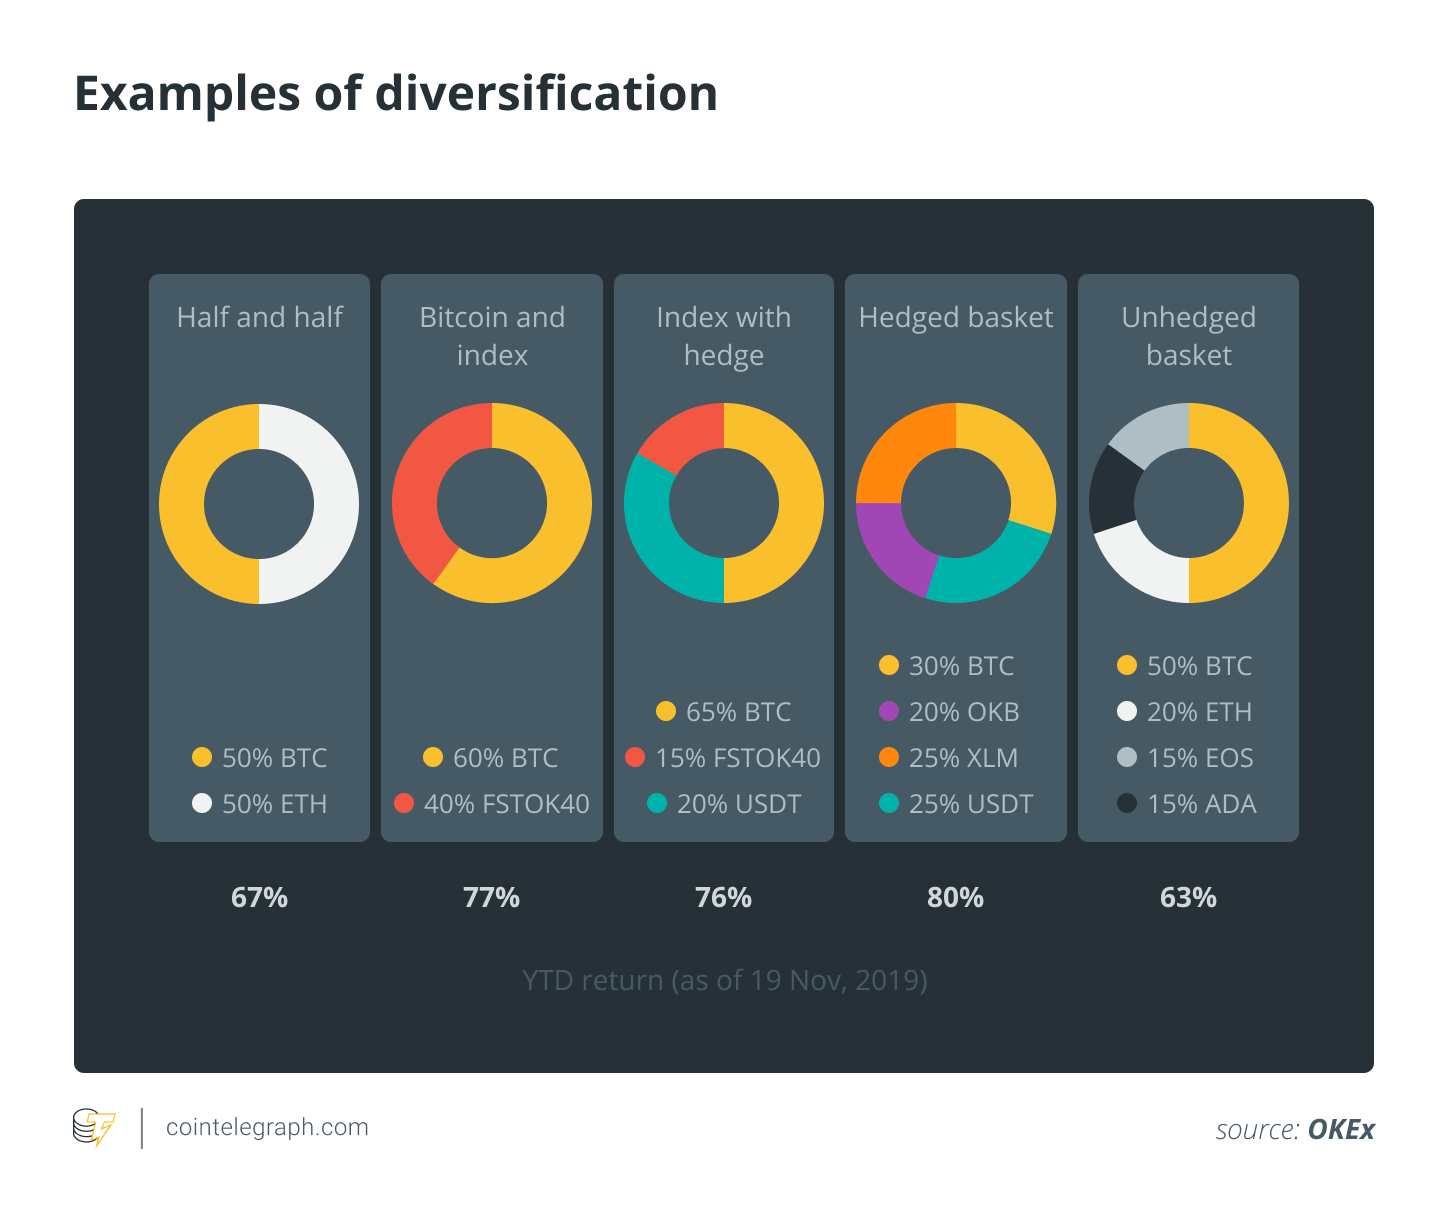 Examples of diversification